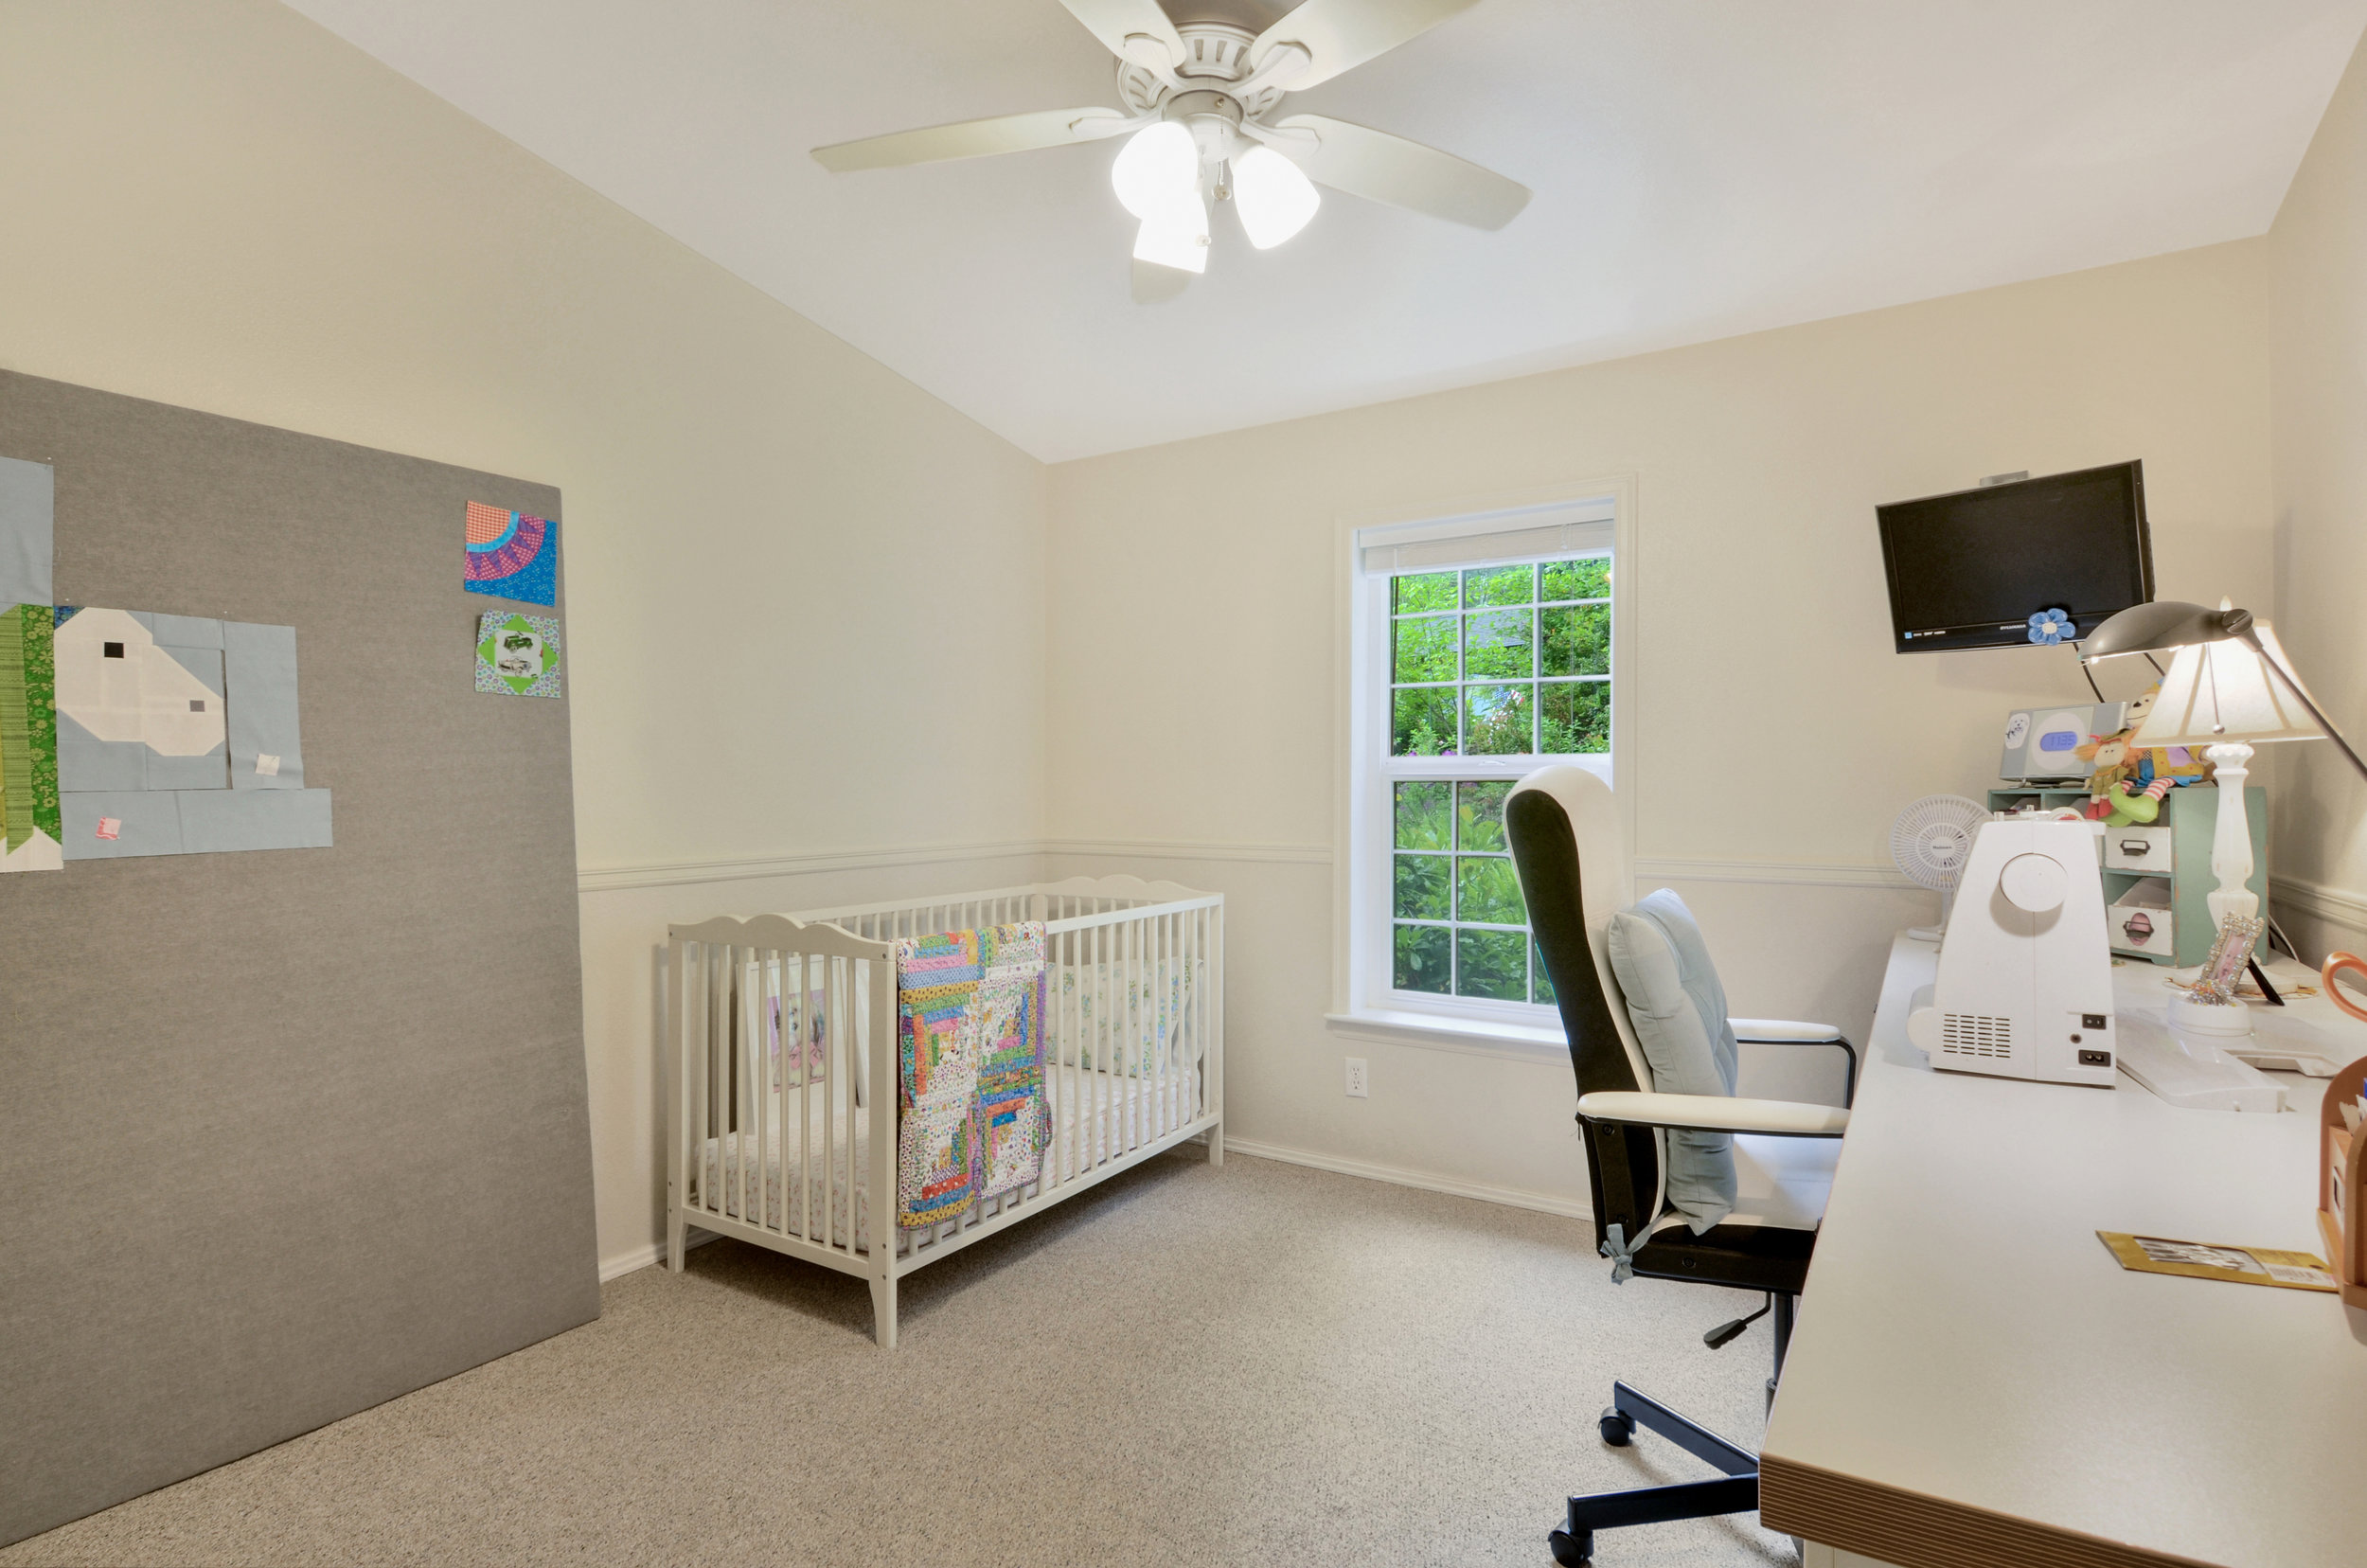 The 3rd of the three bedrooms, this one is set up as a nursery and sewing room. You can use it as a regular bedroom, craft room, guest room, or office depending on the needs and size of your family.